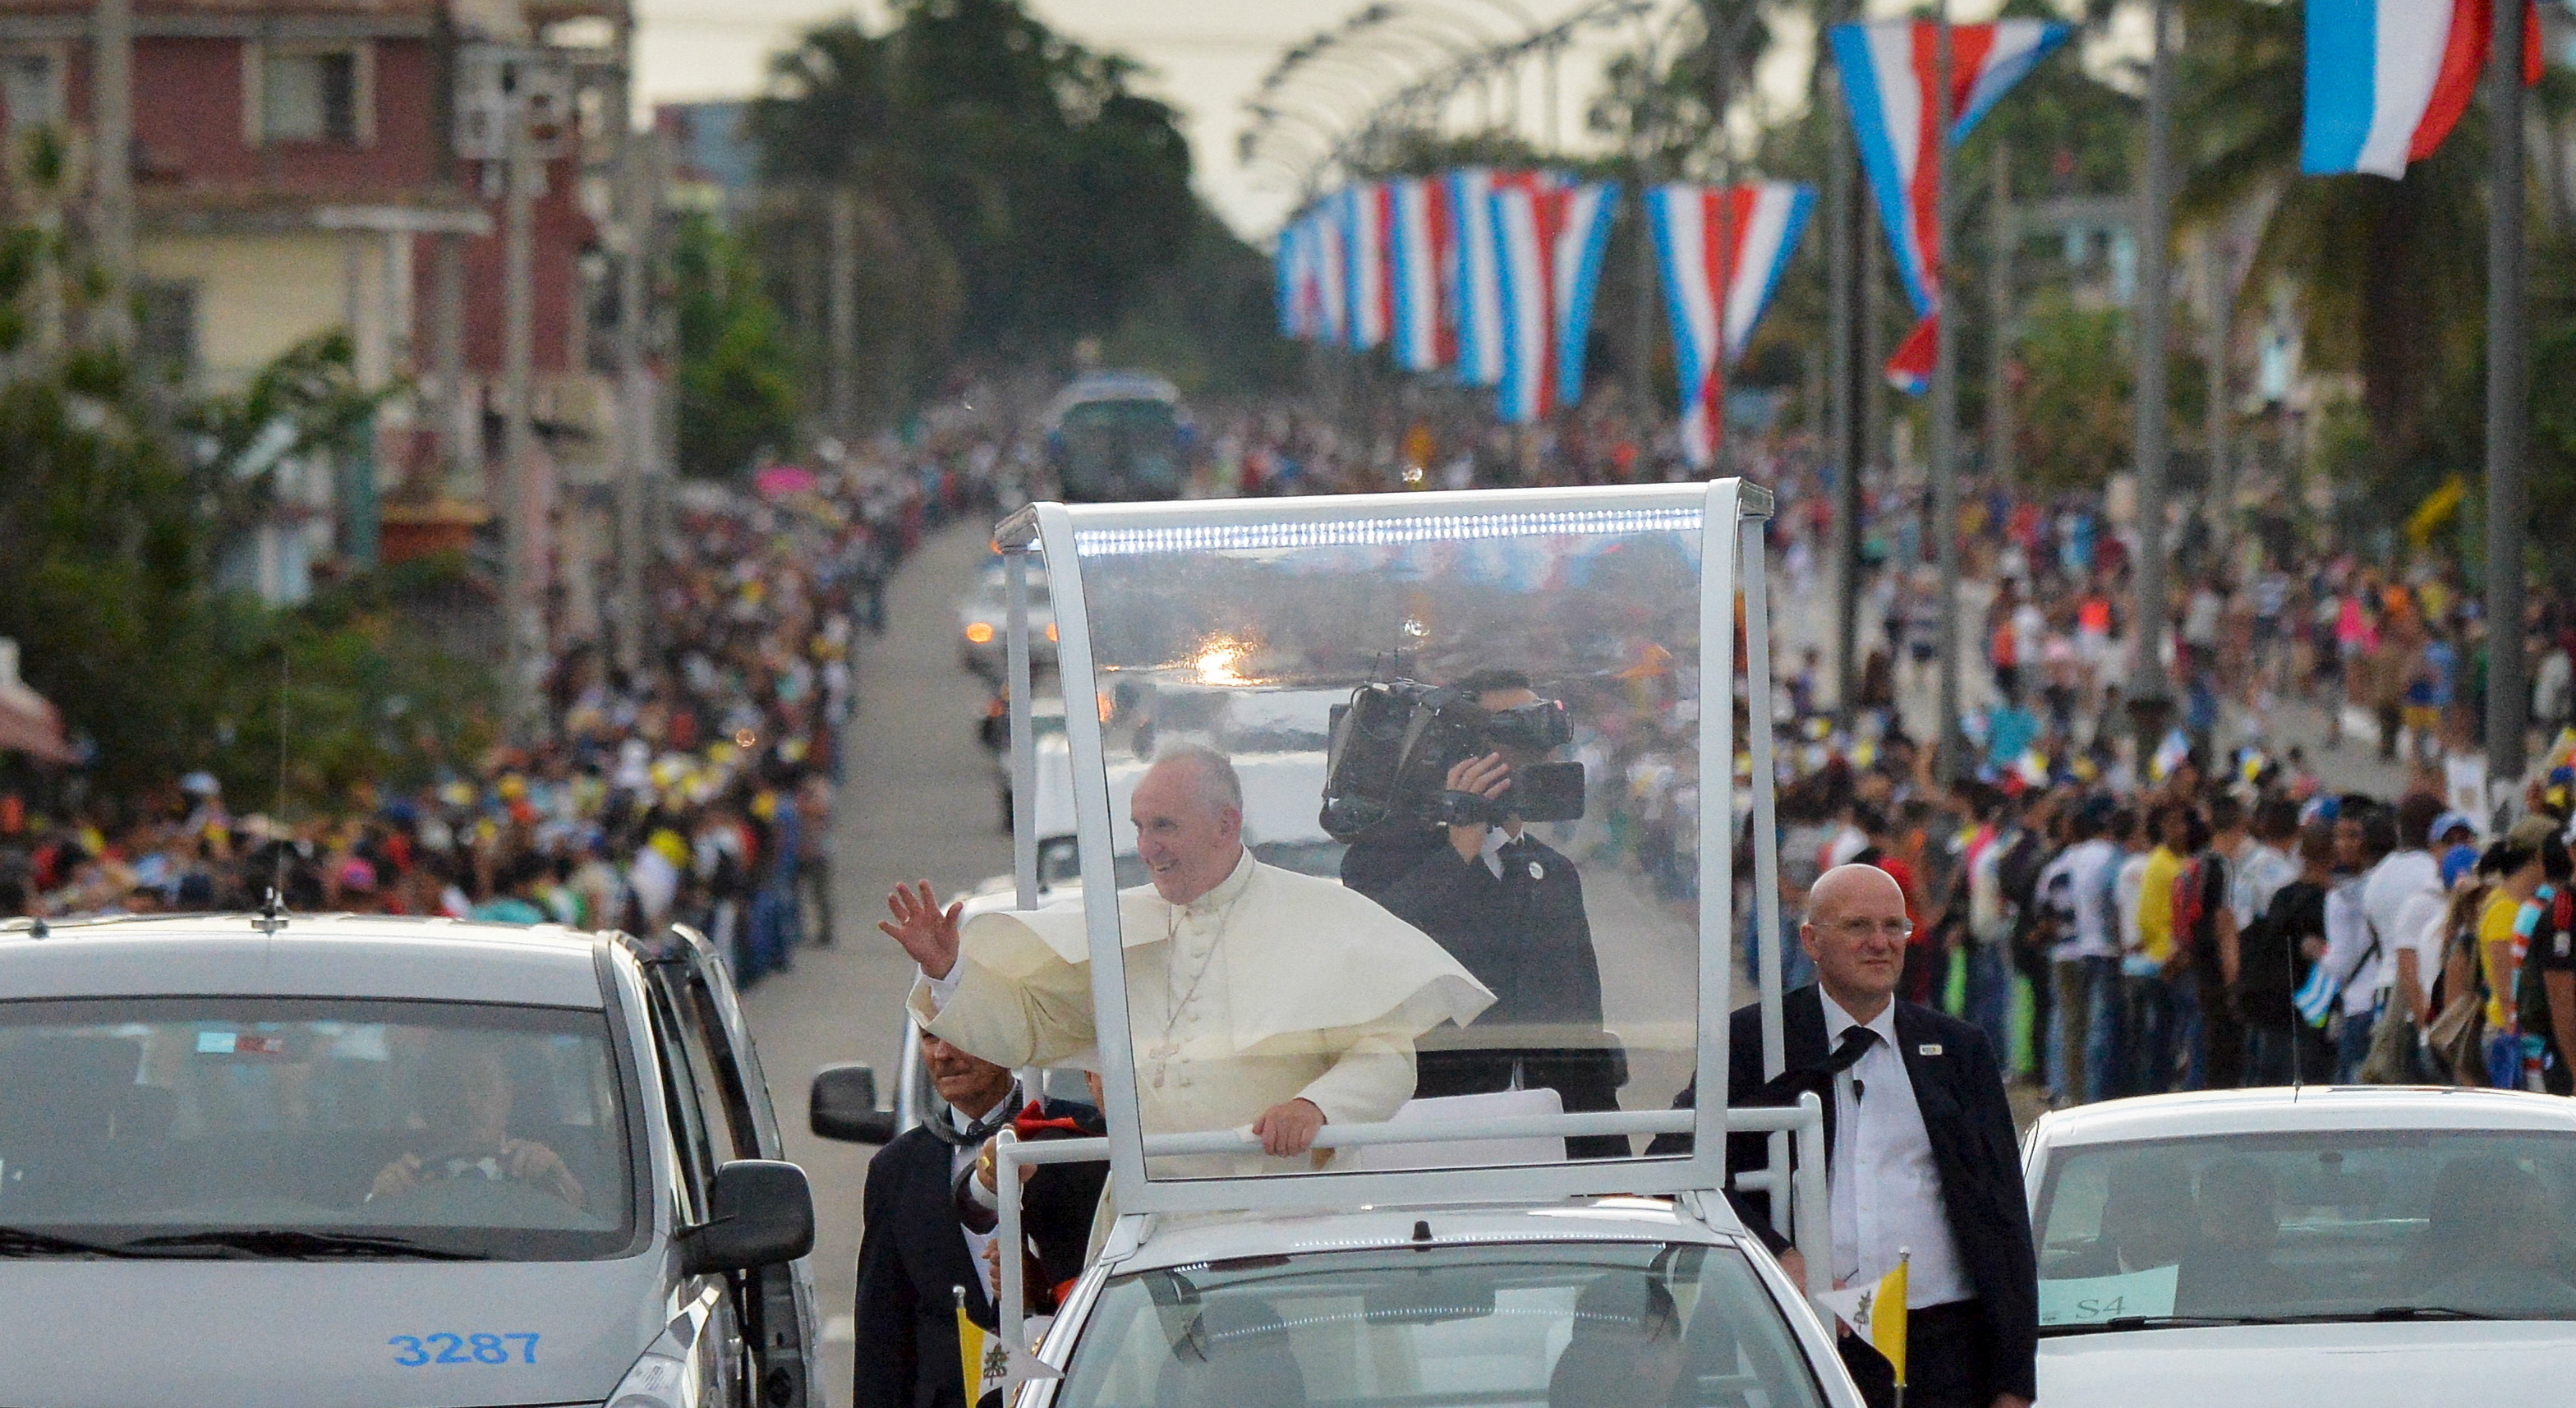 Pope Francis is welcomed by Cubans during his journey from Jose Marti airport to the Nunciature in Havana, on September 19, 2015. Pope Francis' plane landed in Havana on Saturday at the start of a nine-day tour of Cuba and the United States whose recent diplomatic detente he helped broker. REUTERS/Adalberto Roque/Pool??      TPX IMAGES OF THE DAY      - RTS1XND